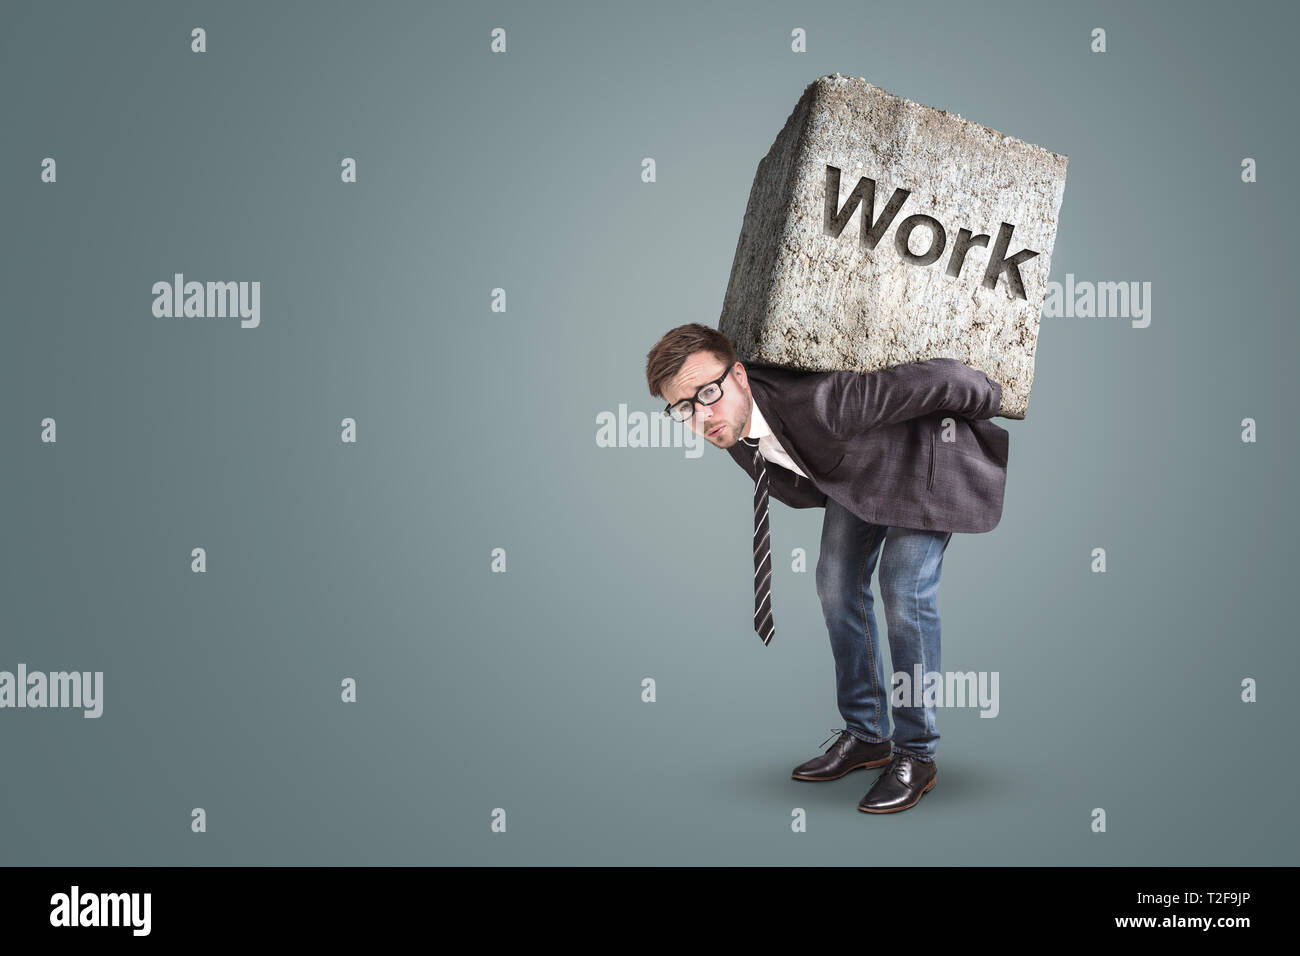 Concept of an entrepreneur bending under a heavy workload - Stock Image